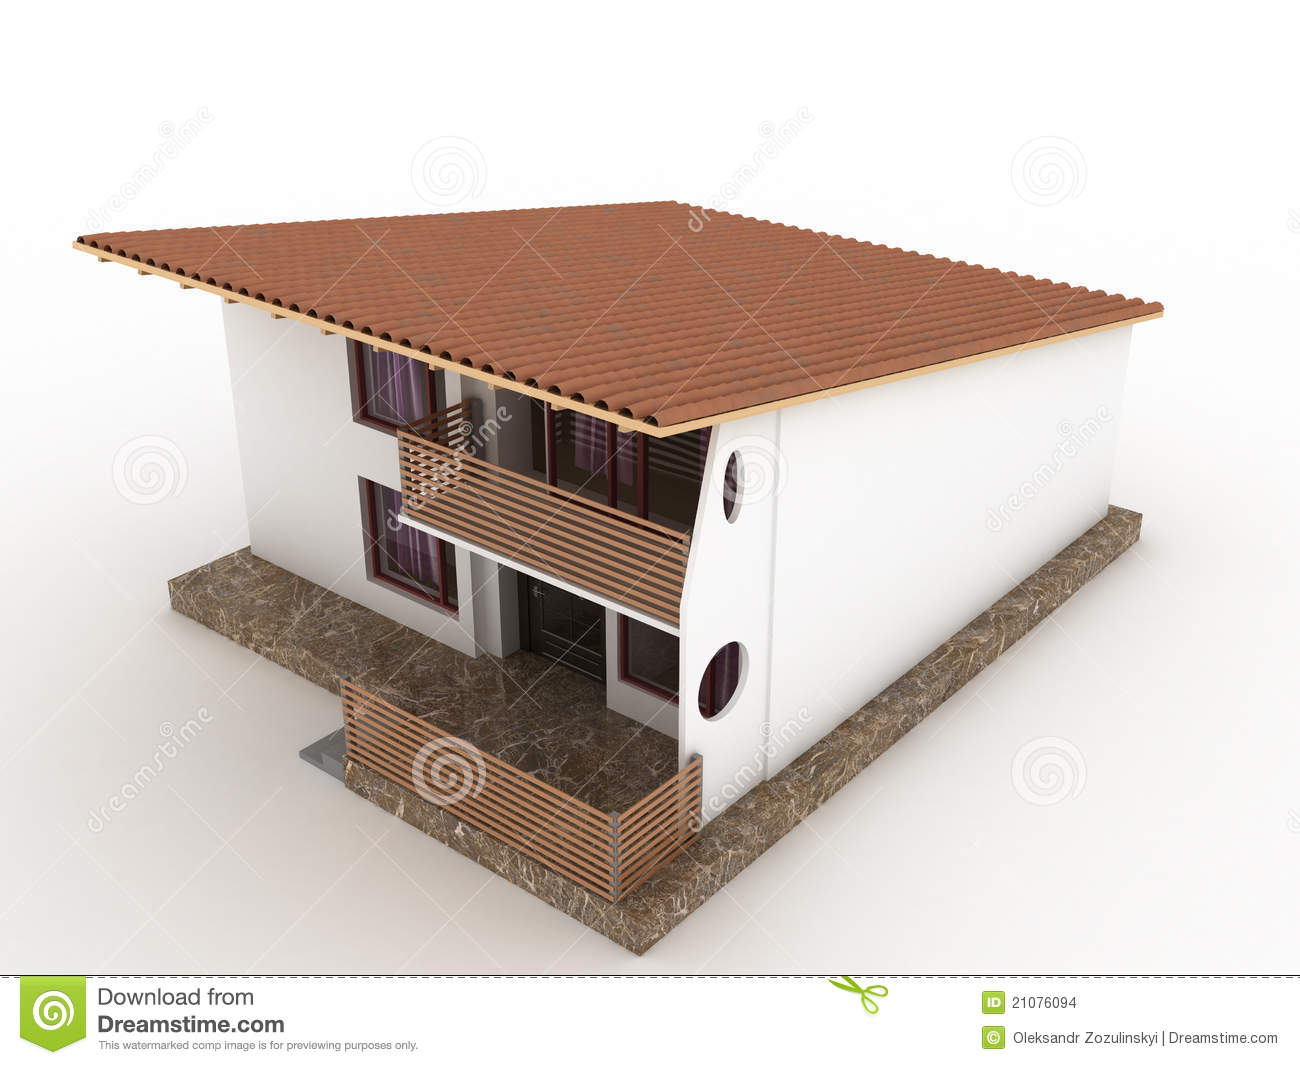 The House With Sloping Roof №1 Stock Images.